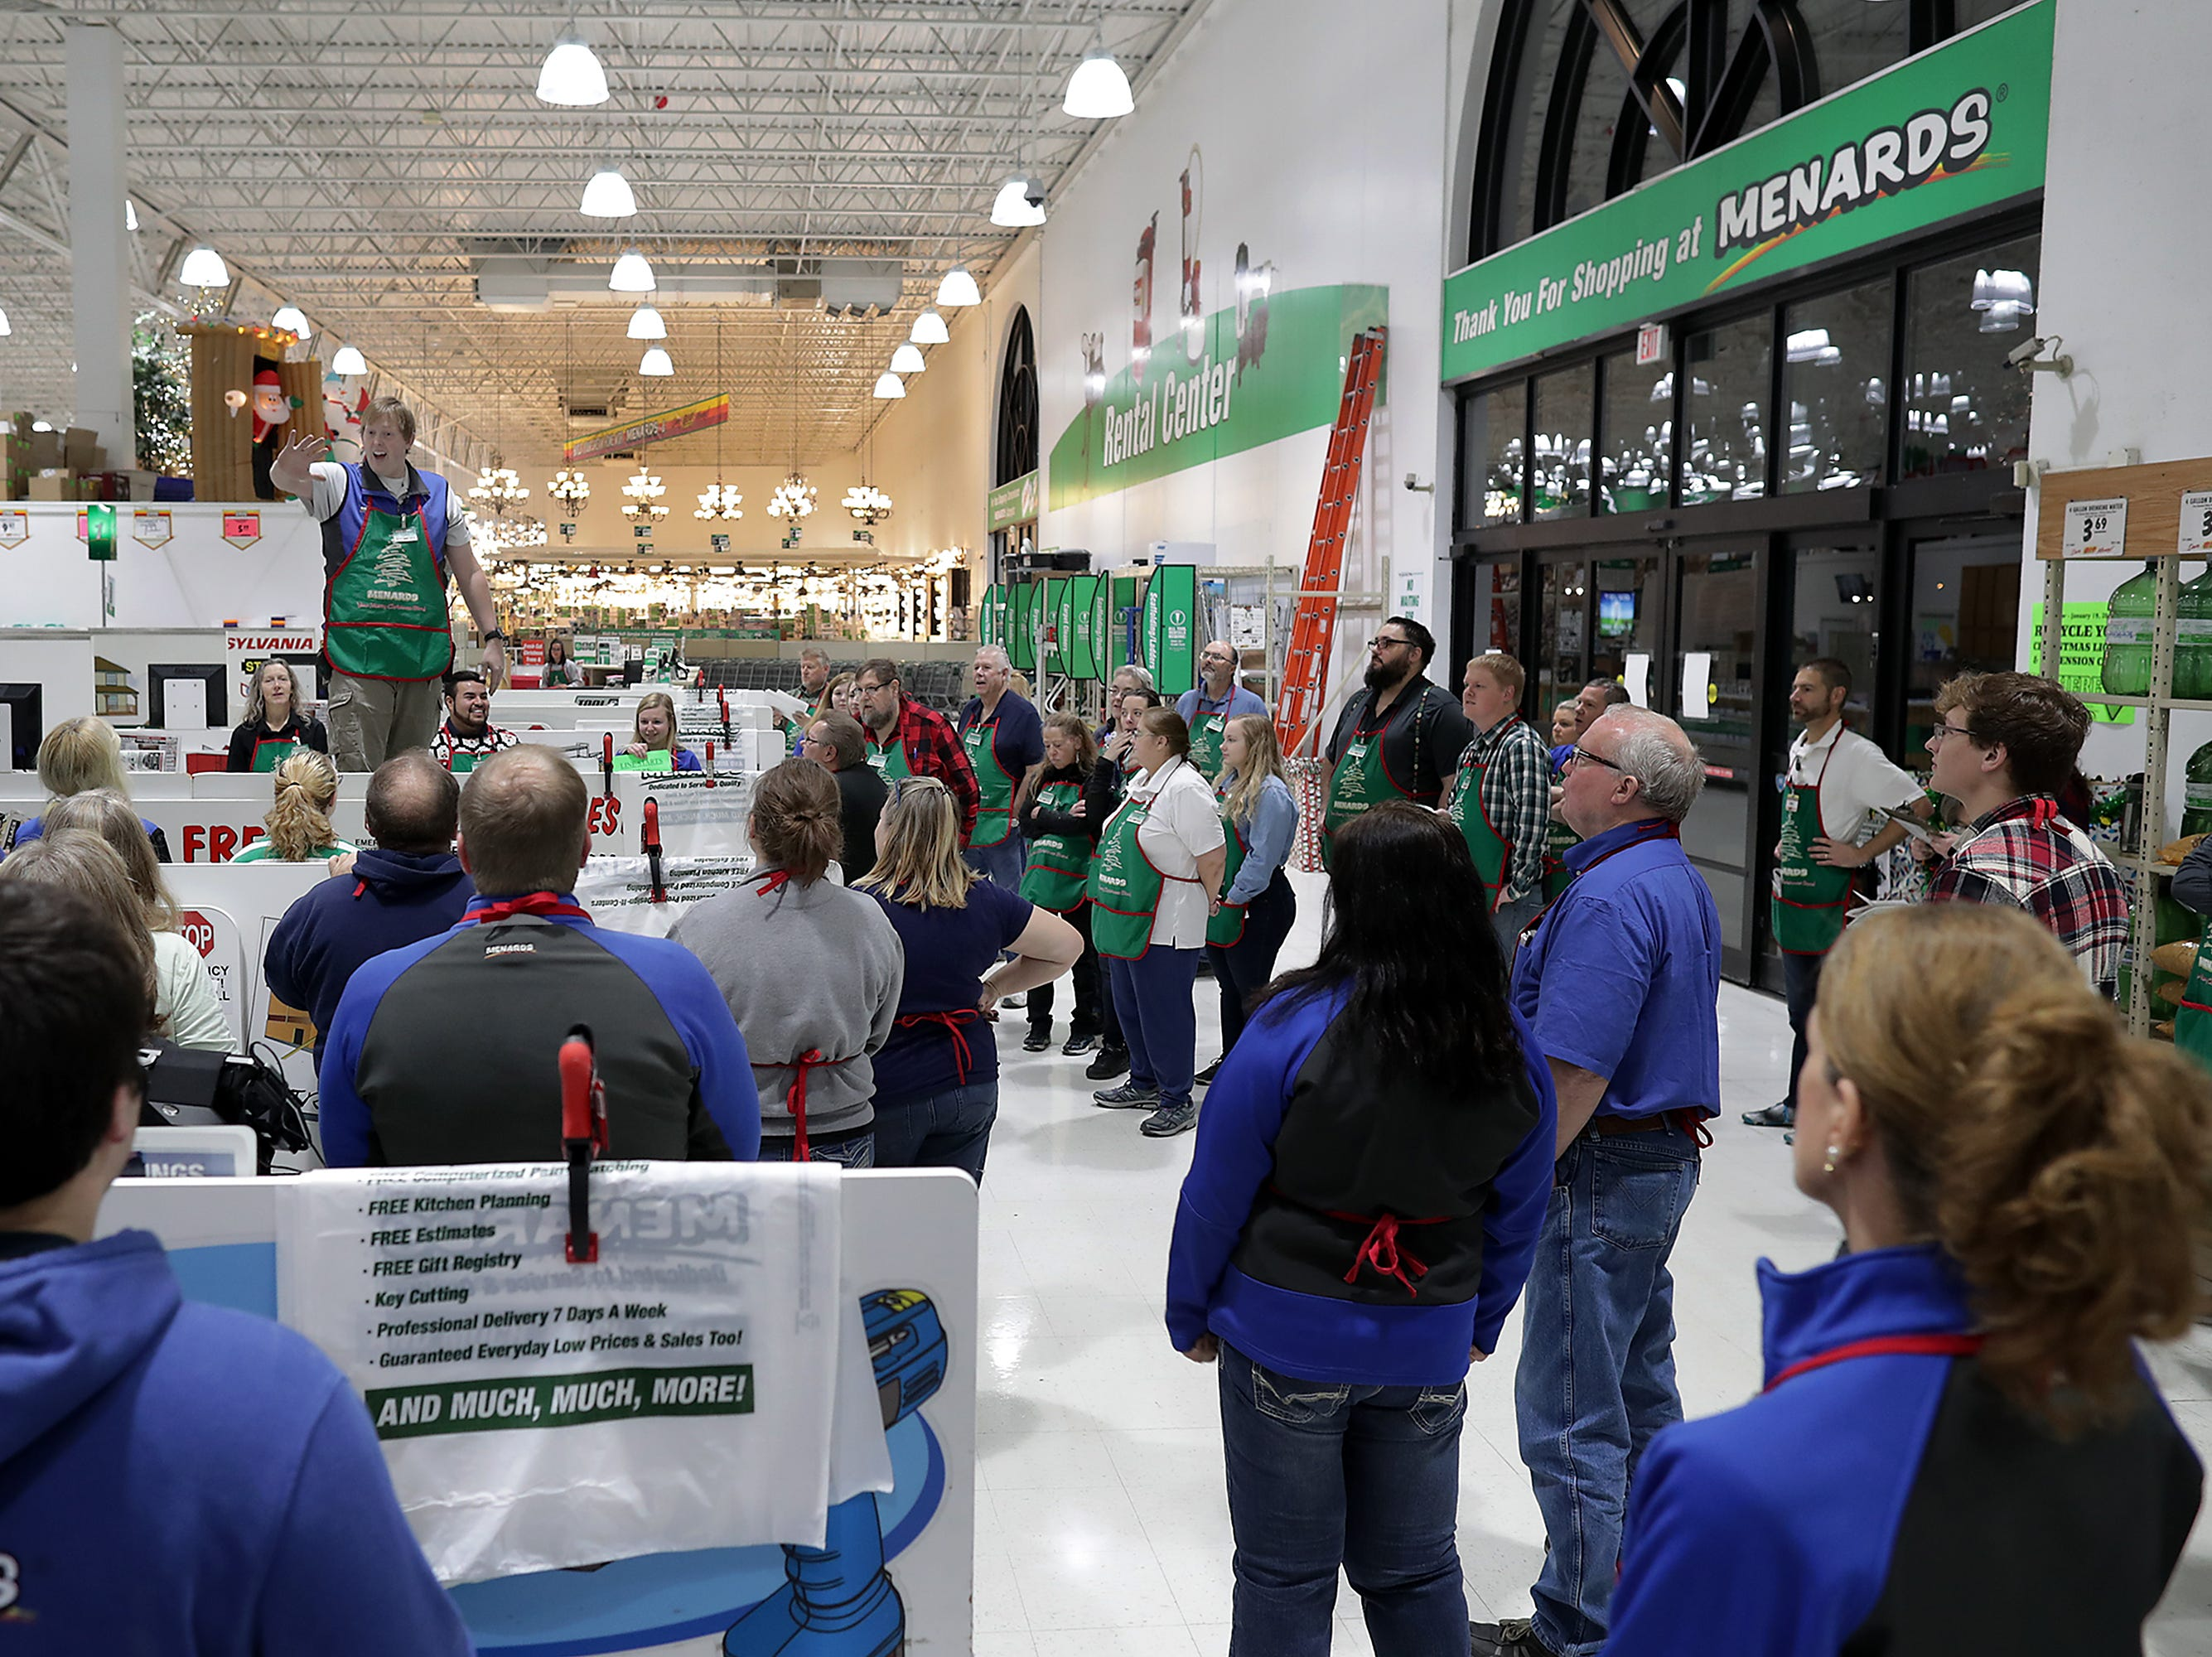 General Manager Tony Jacobson talks to the staff before opening the doors to Black Friday shoppers at Menards on Friday, Nov. 23, 2018 in Grand Chute, Wis